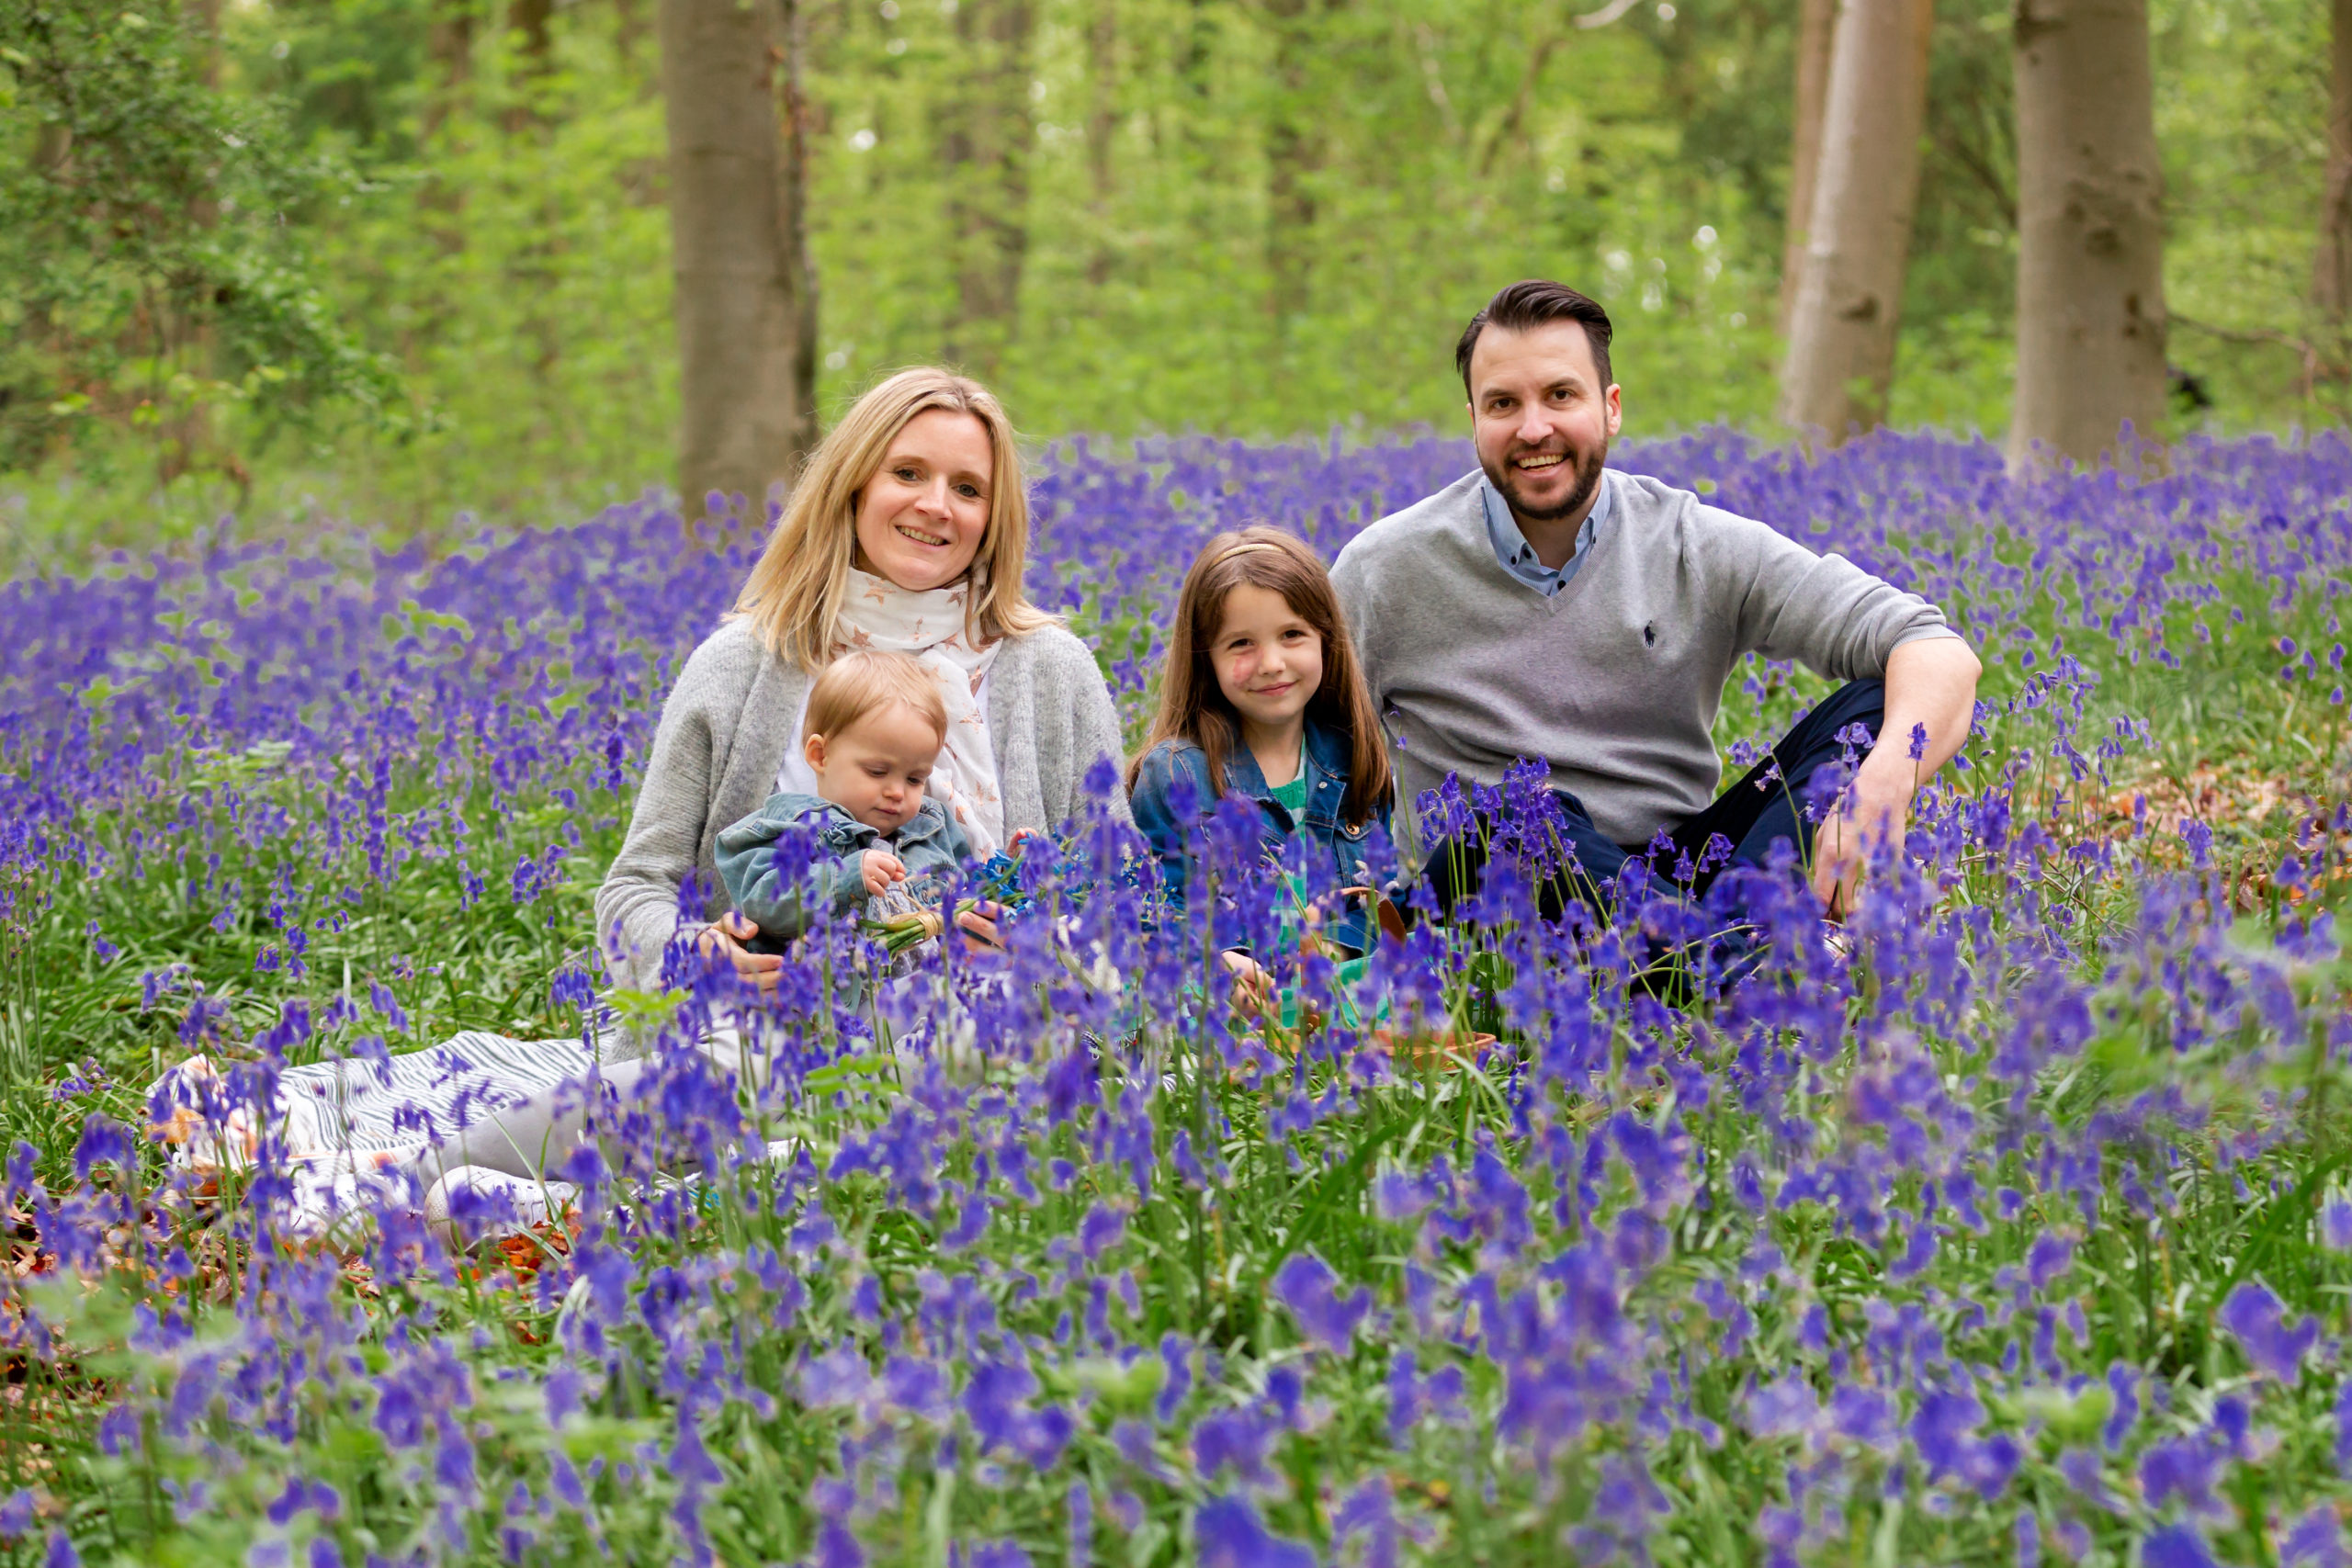 what to wear for a bluebell photo session